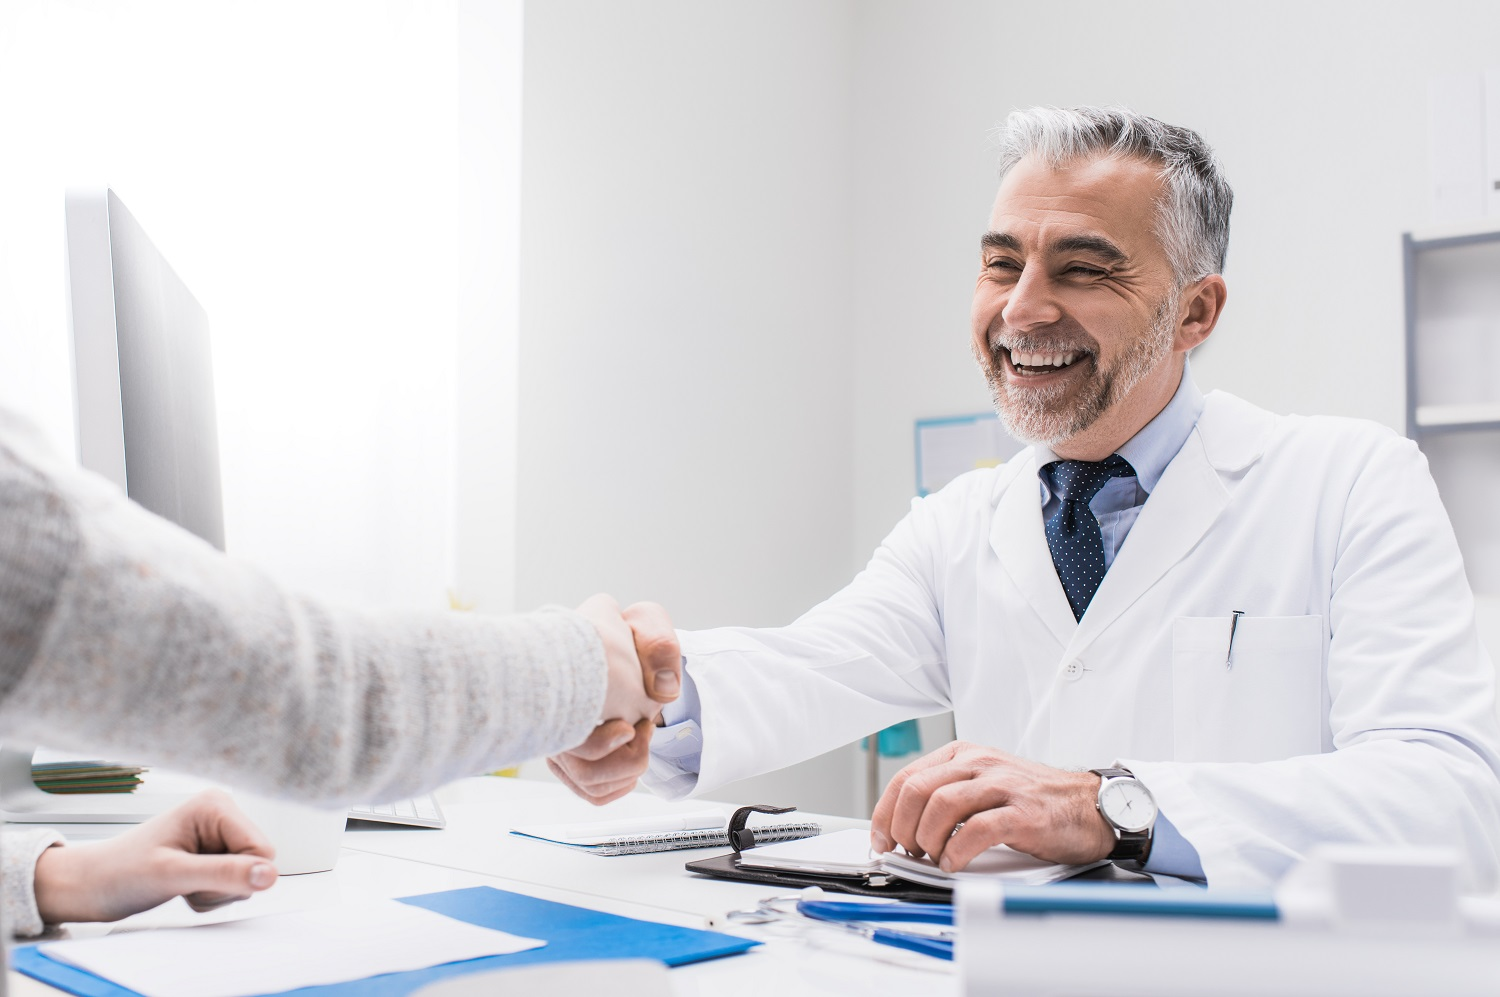 Smiling doctor and female patient shaking hands, healthcare professionals concept